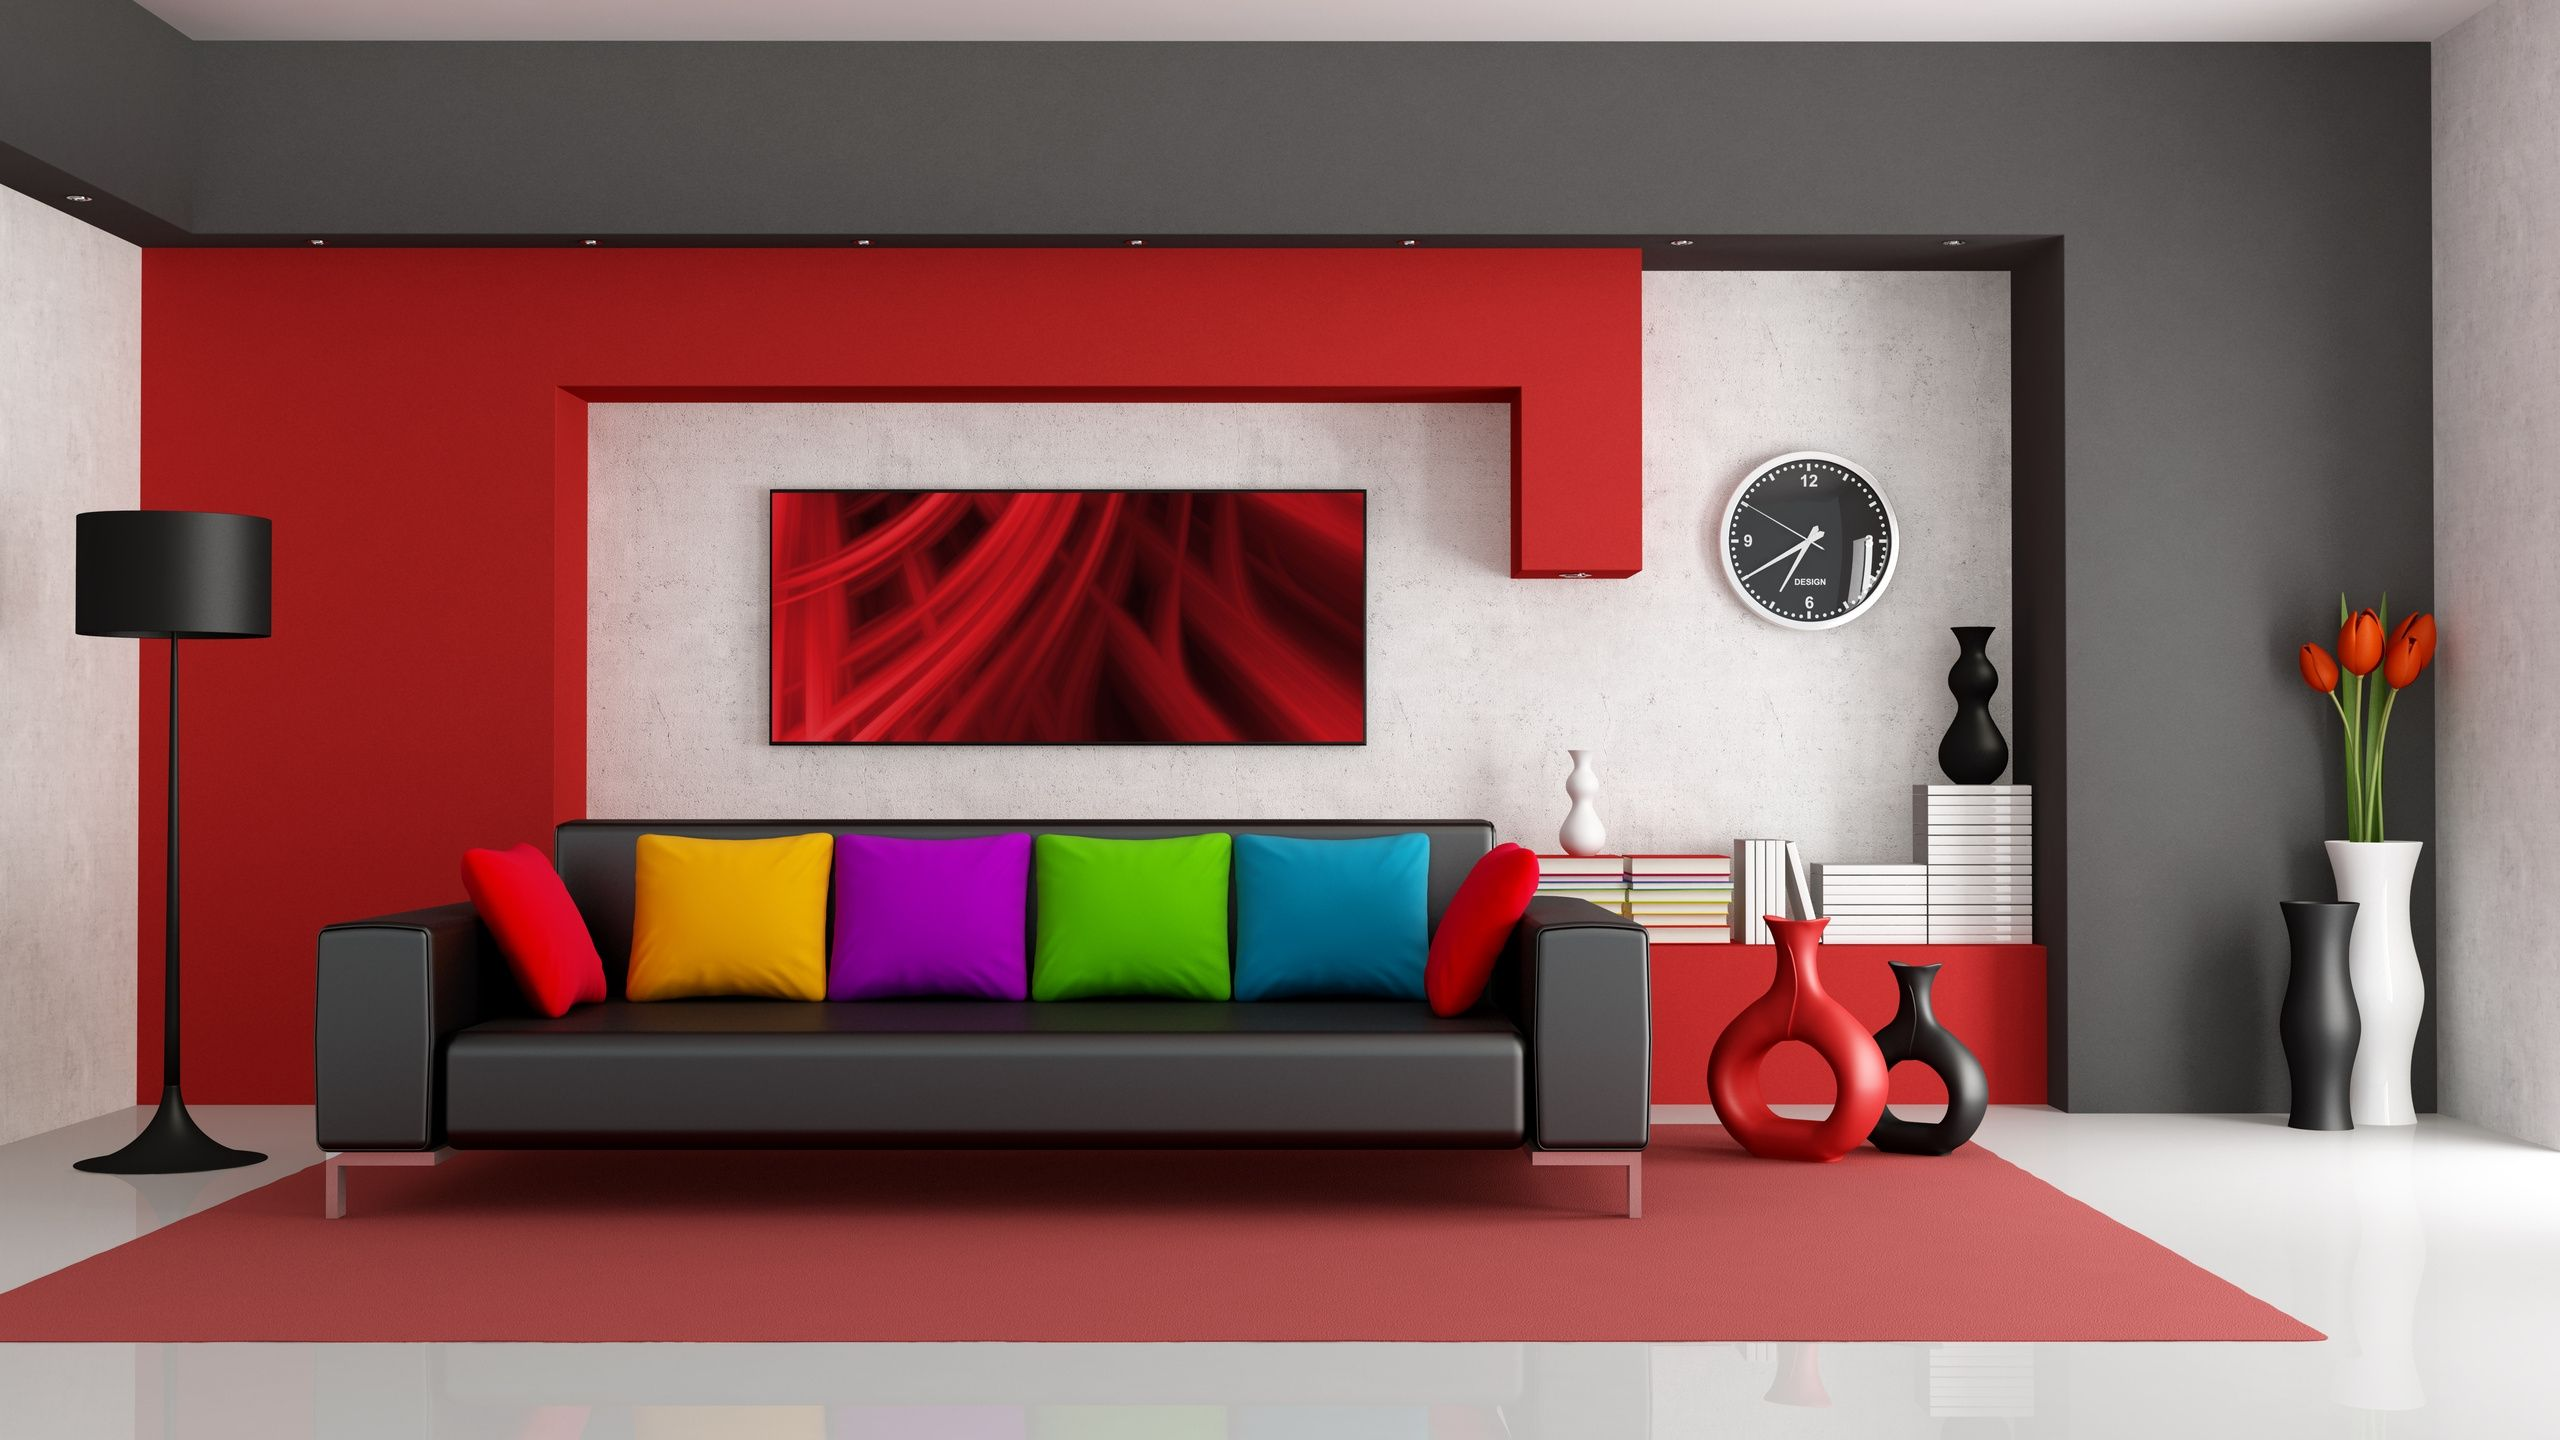 furniture outstanding red modern living room with slim screen tv and red furniture design also white wall paint with black sofa colorful pillow and black